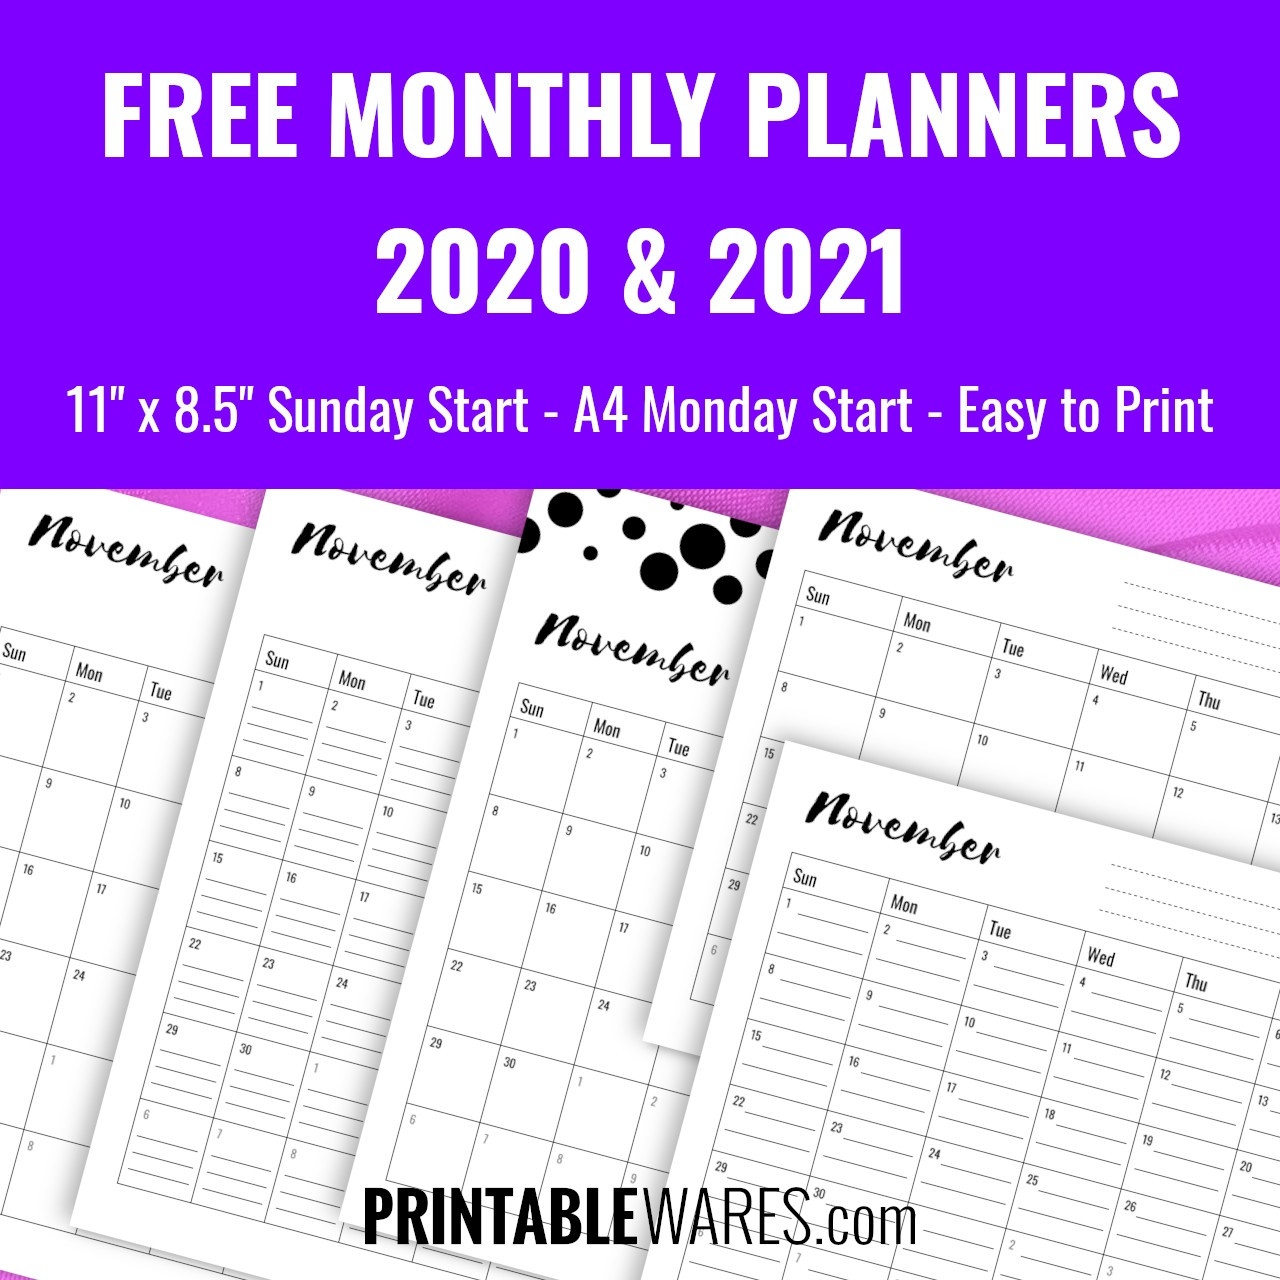 Monthly Planner Printable Pdf Templates 2021, Free-Printable Monthly Diaries 2021